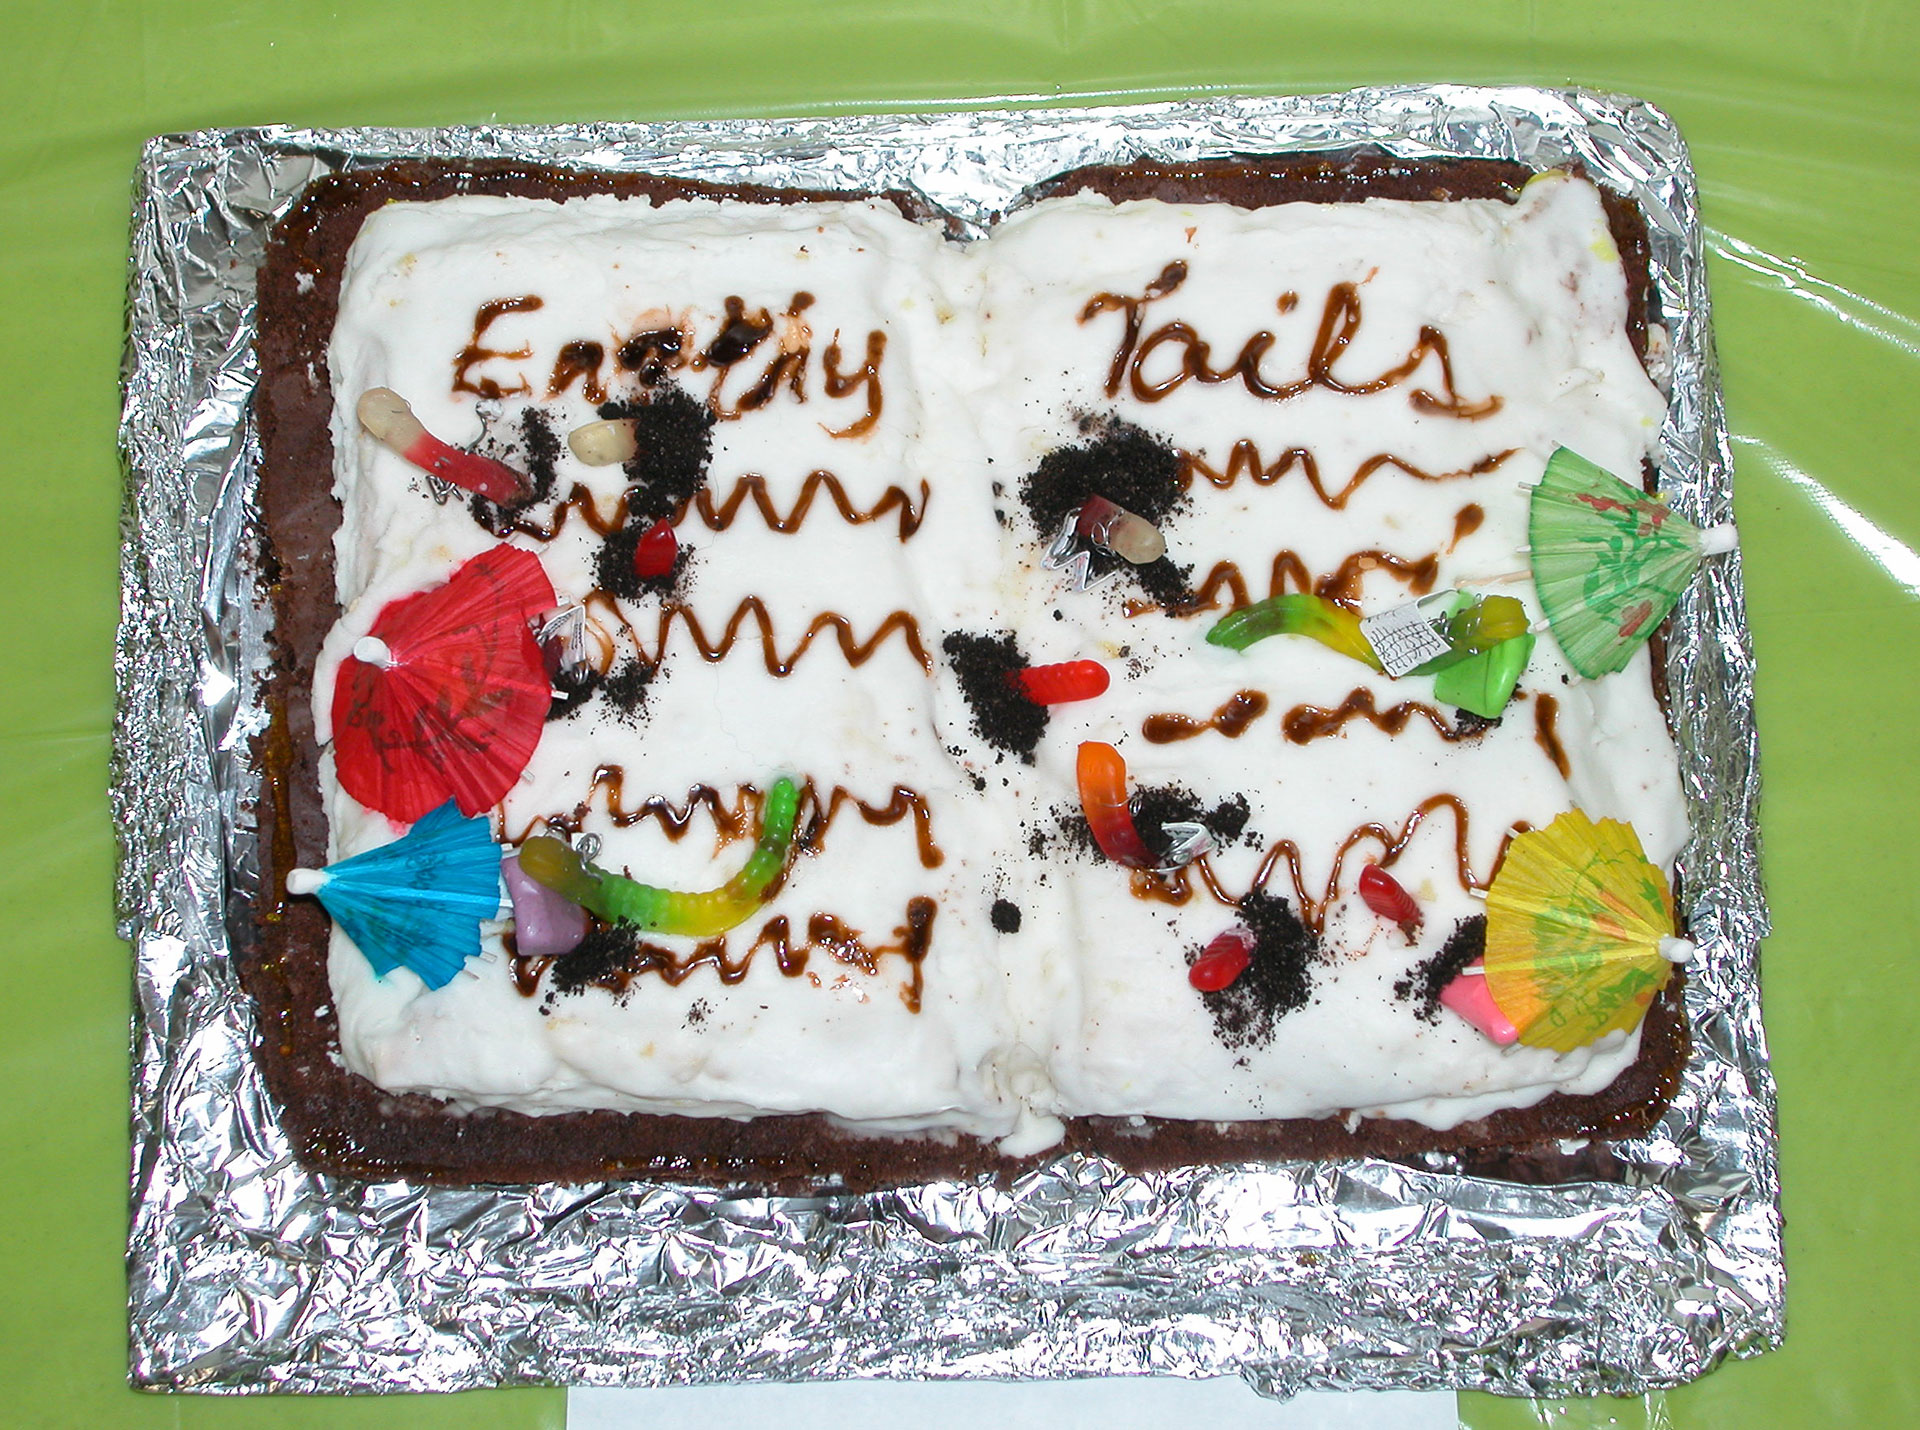 """Earthy Tales"" by Dona Yates; 2007 Edible Book Festivall entry"